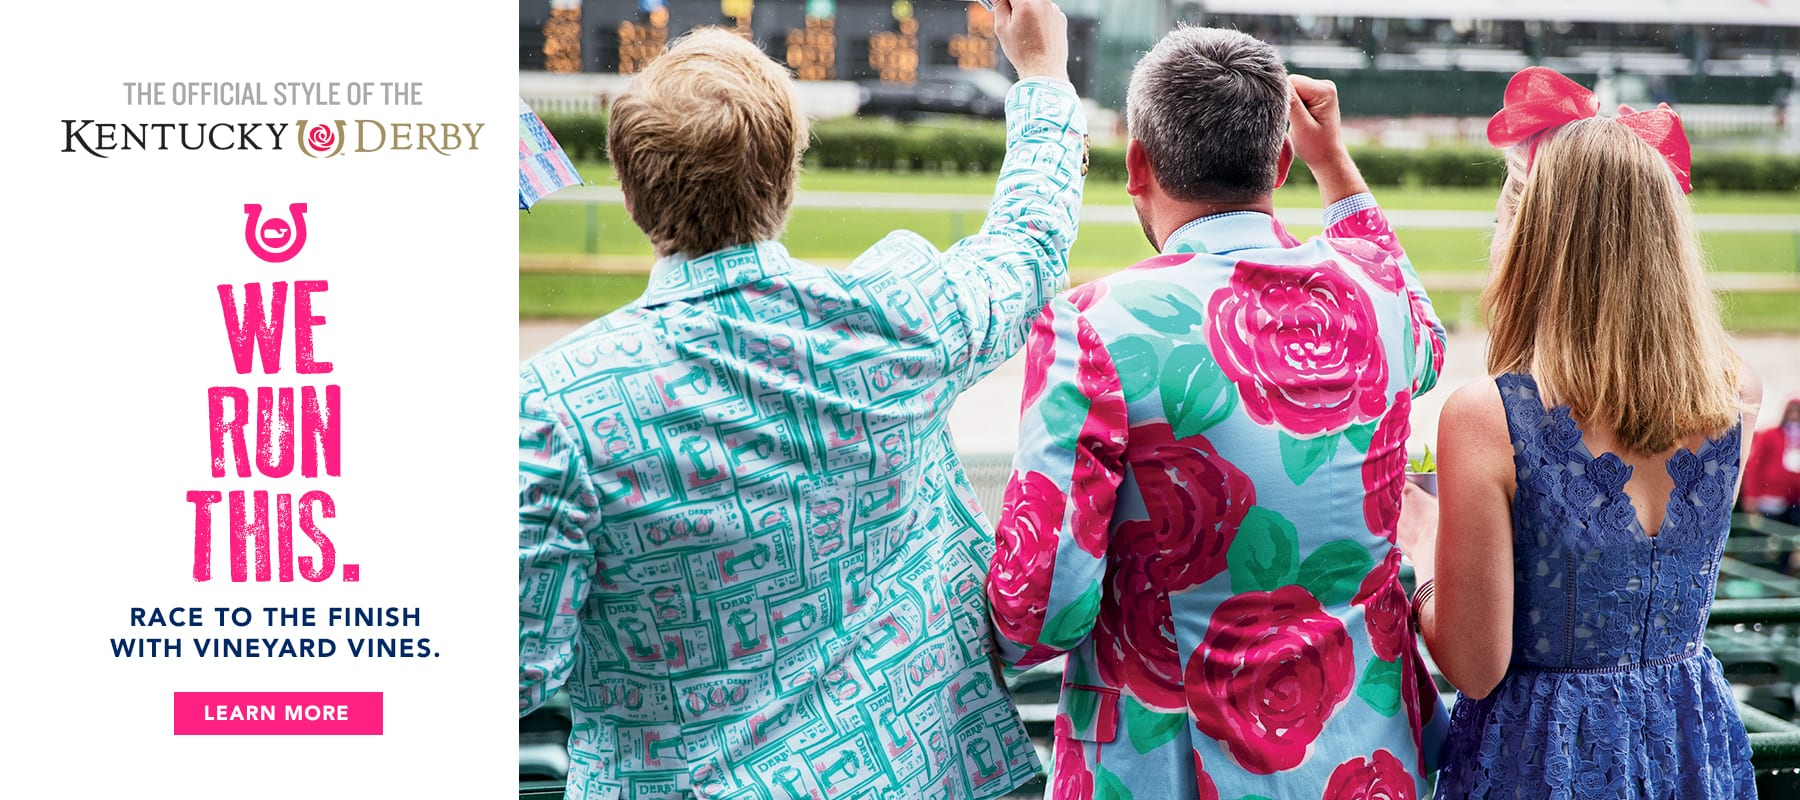 The official style of the Kentucky Derby. We run this. Race to the finish with vineyard vines. Learn more.